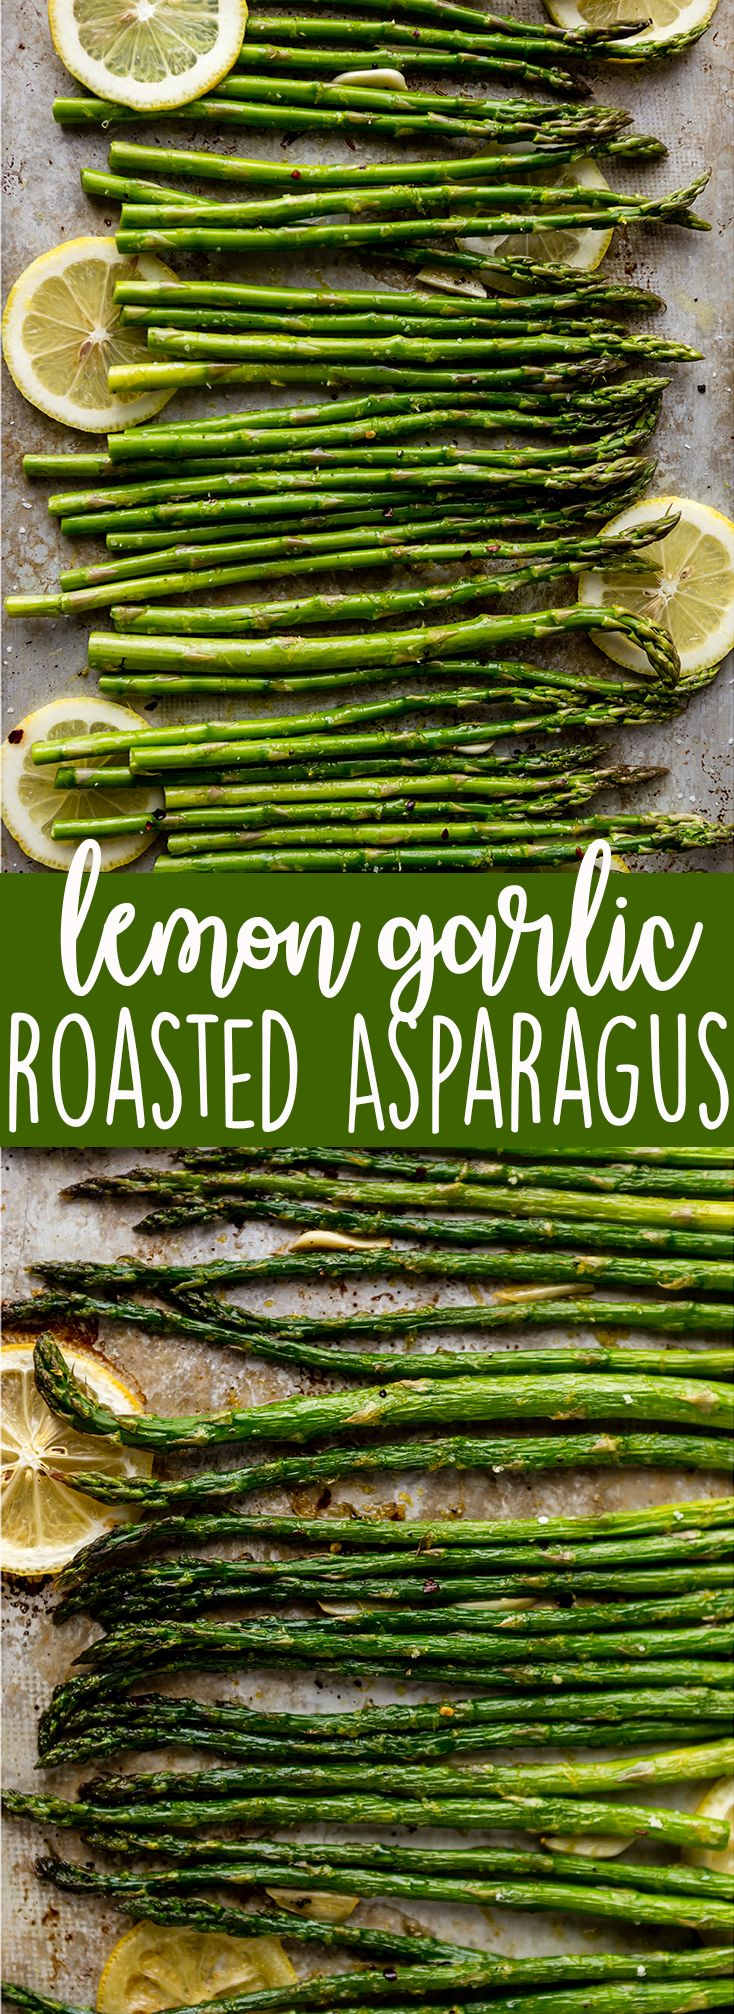 Oven roasted asparagus with Garlic, Lemon and Parmesan | Easy roasted asparagus | lemon asparagus | garlic asparagus | Parmesan asparagus | Healthy asparagus in oven